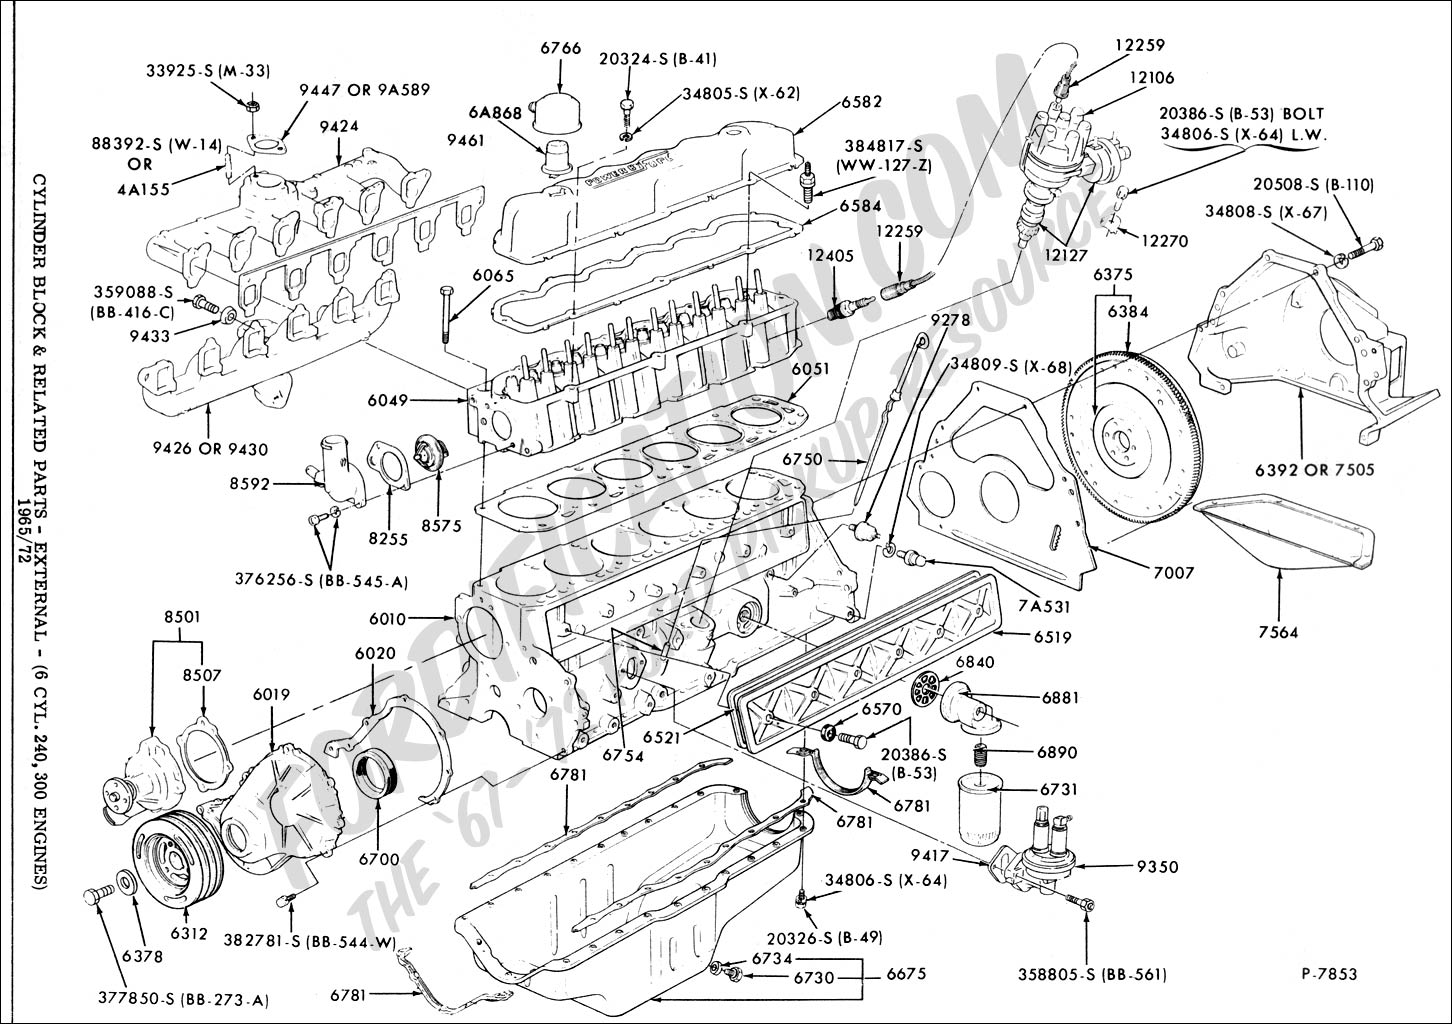 ford truck technical drawings and schematics section e engine rh fordification com ford ranger schematics ford edge schematics